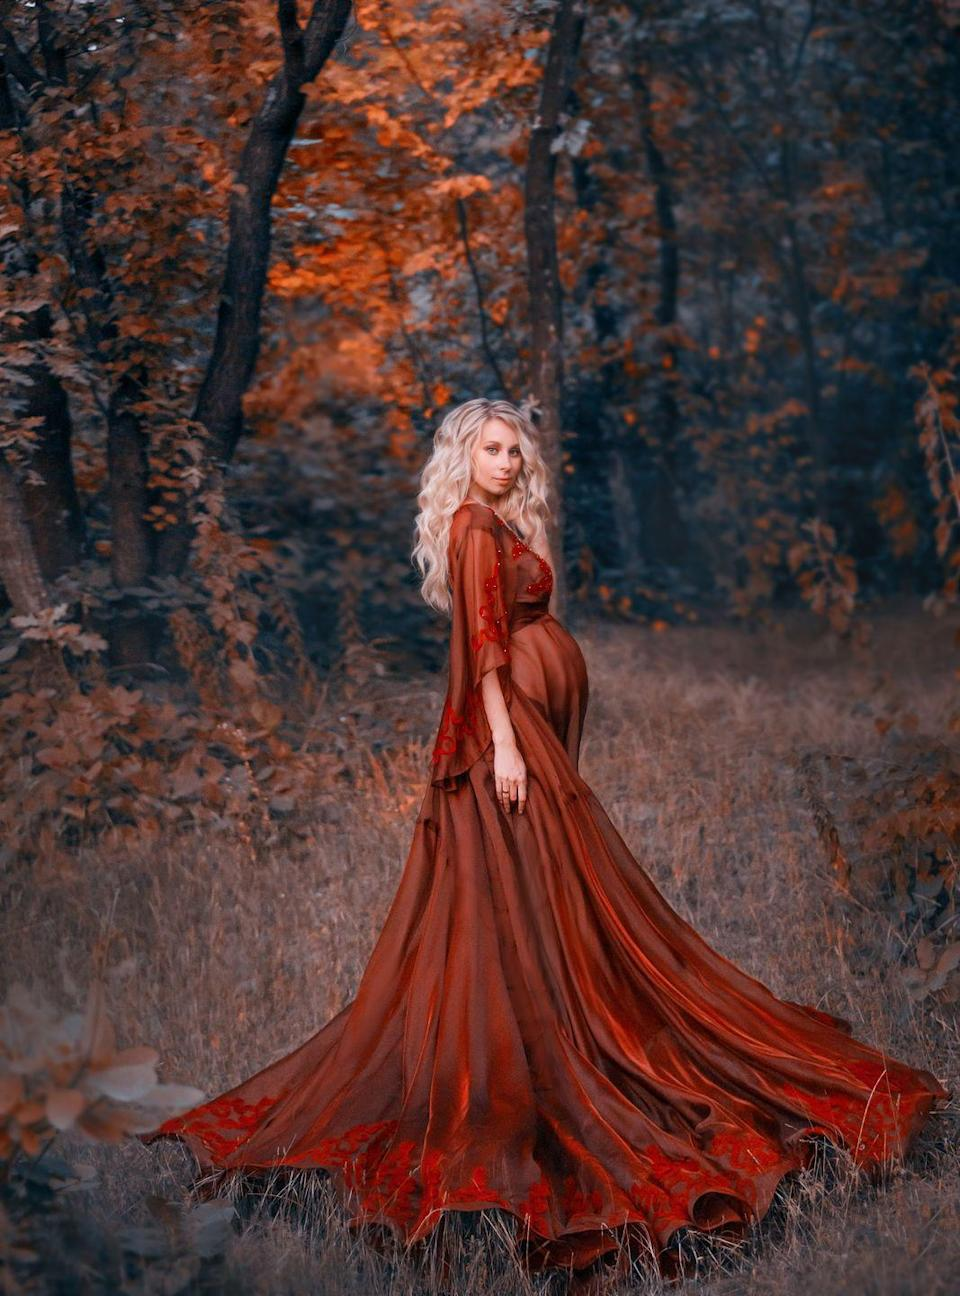 <p>If you live and breathe for dressing up on October 31, don't let your pregnancy cramp your style. Look every bit the woodland fairy with this ethereal ensemble, which, if you know your way around a sewing machine, you can remake for yourself. <br></p>